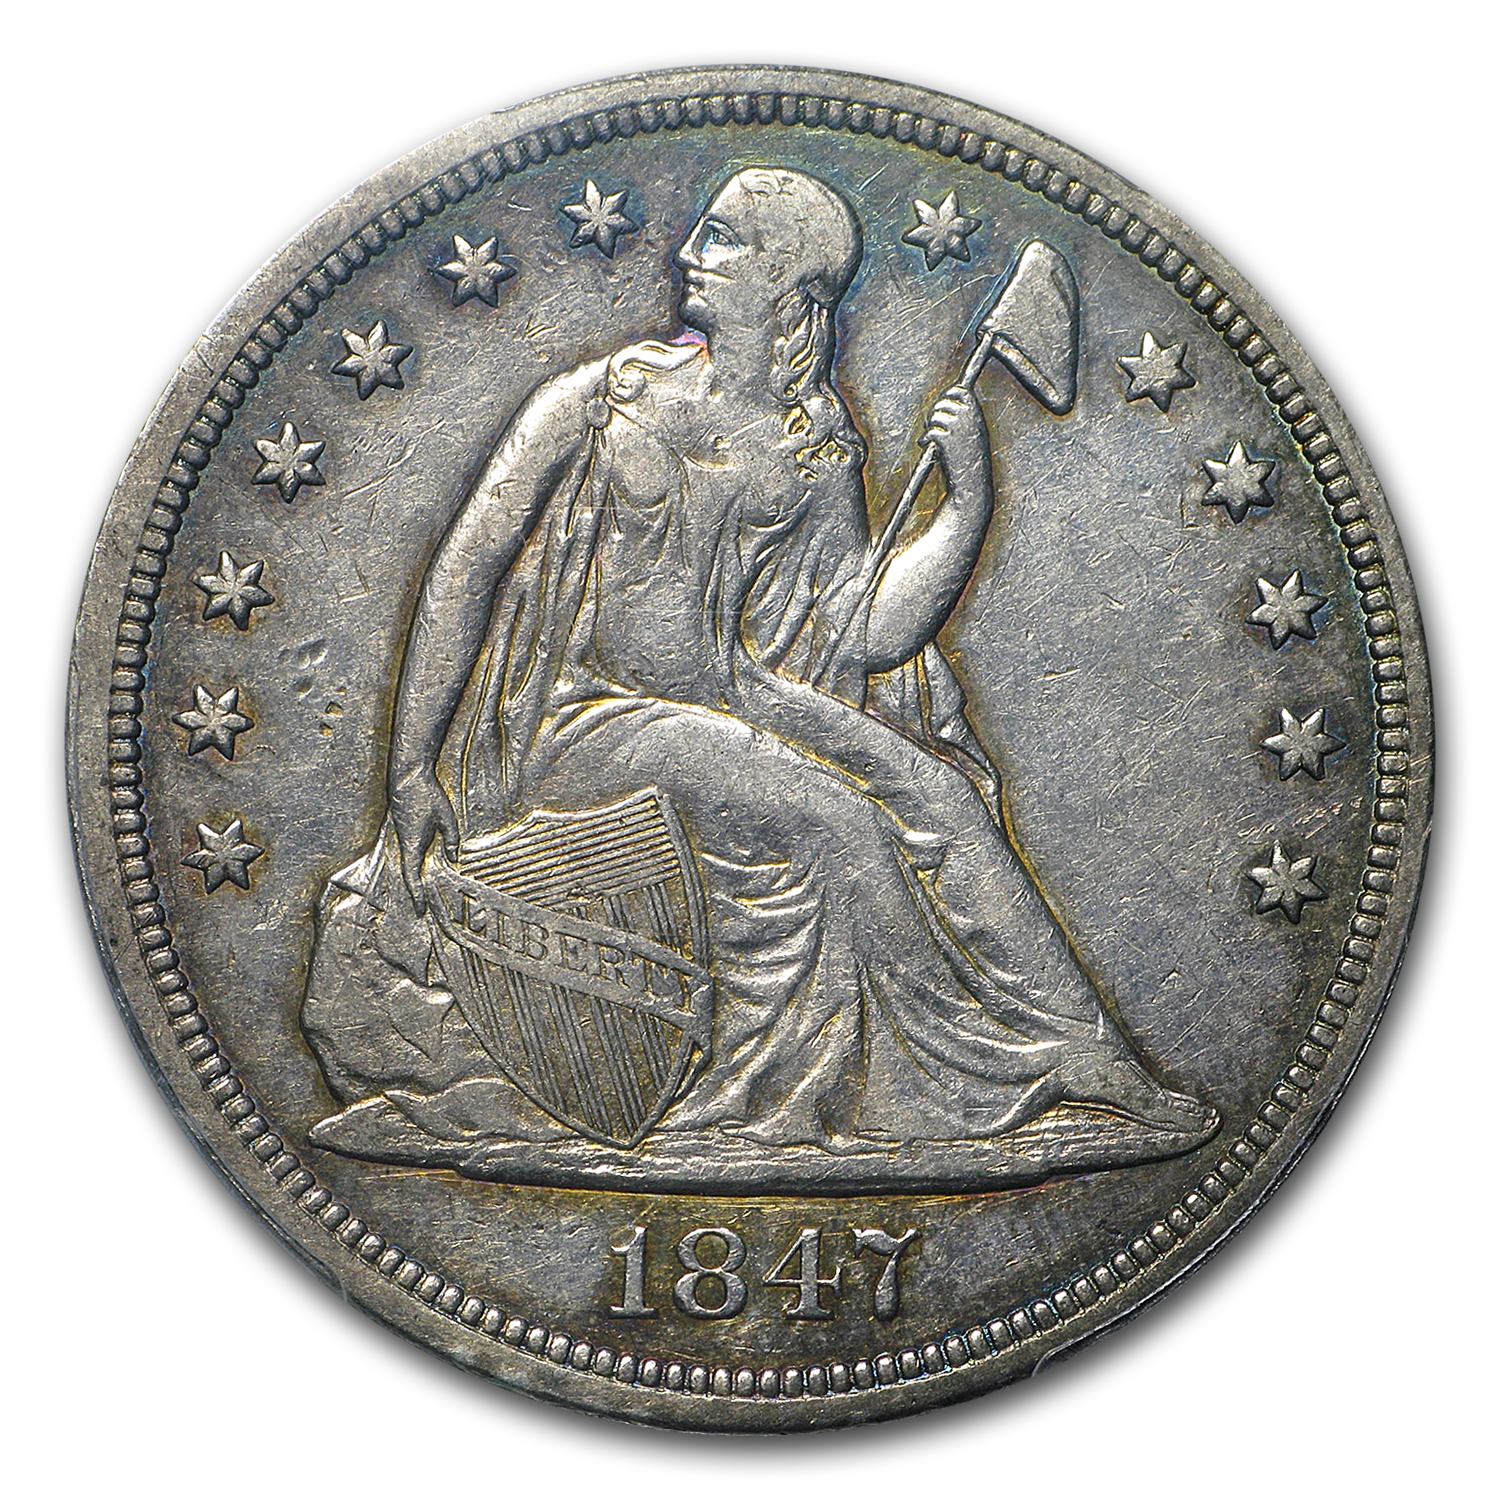 1847 Liberty Seated Dollar XF-40 PCGS